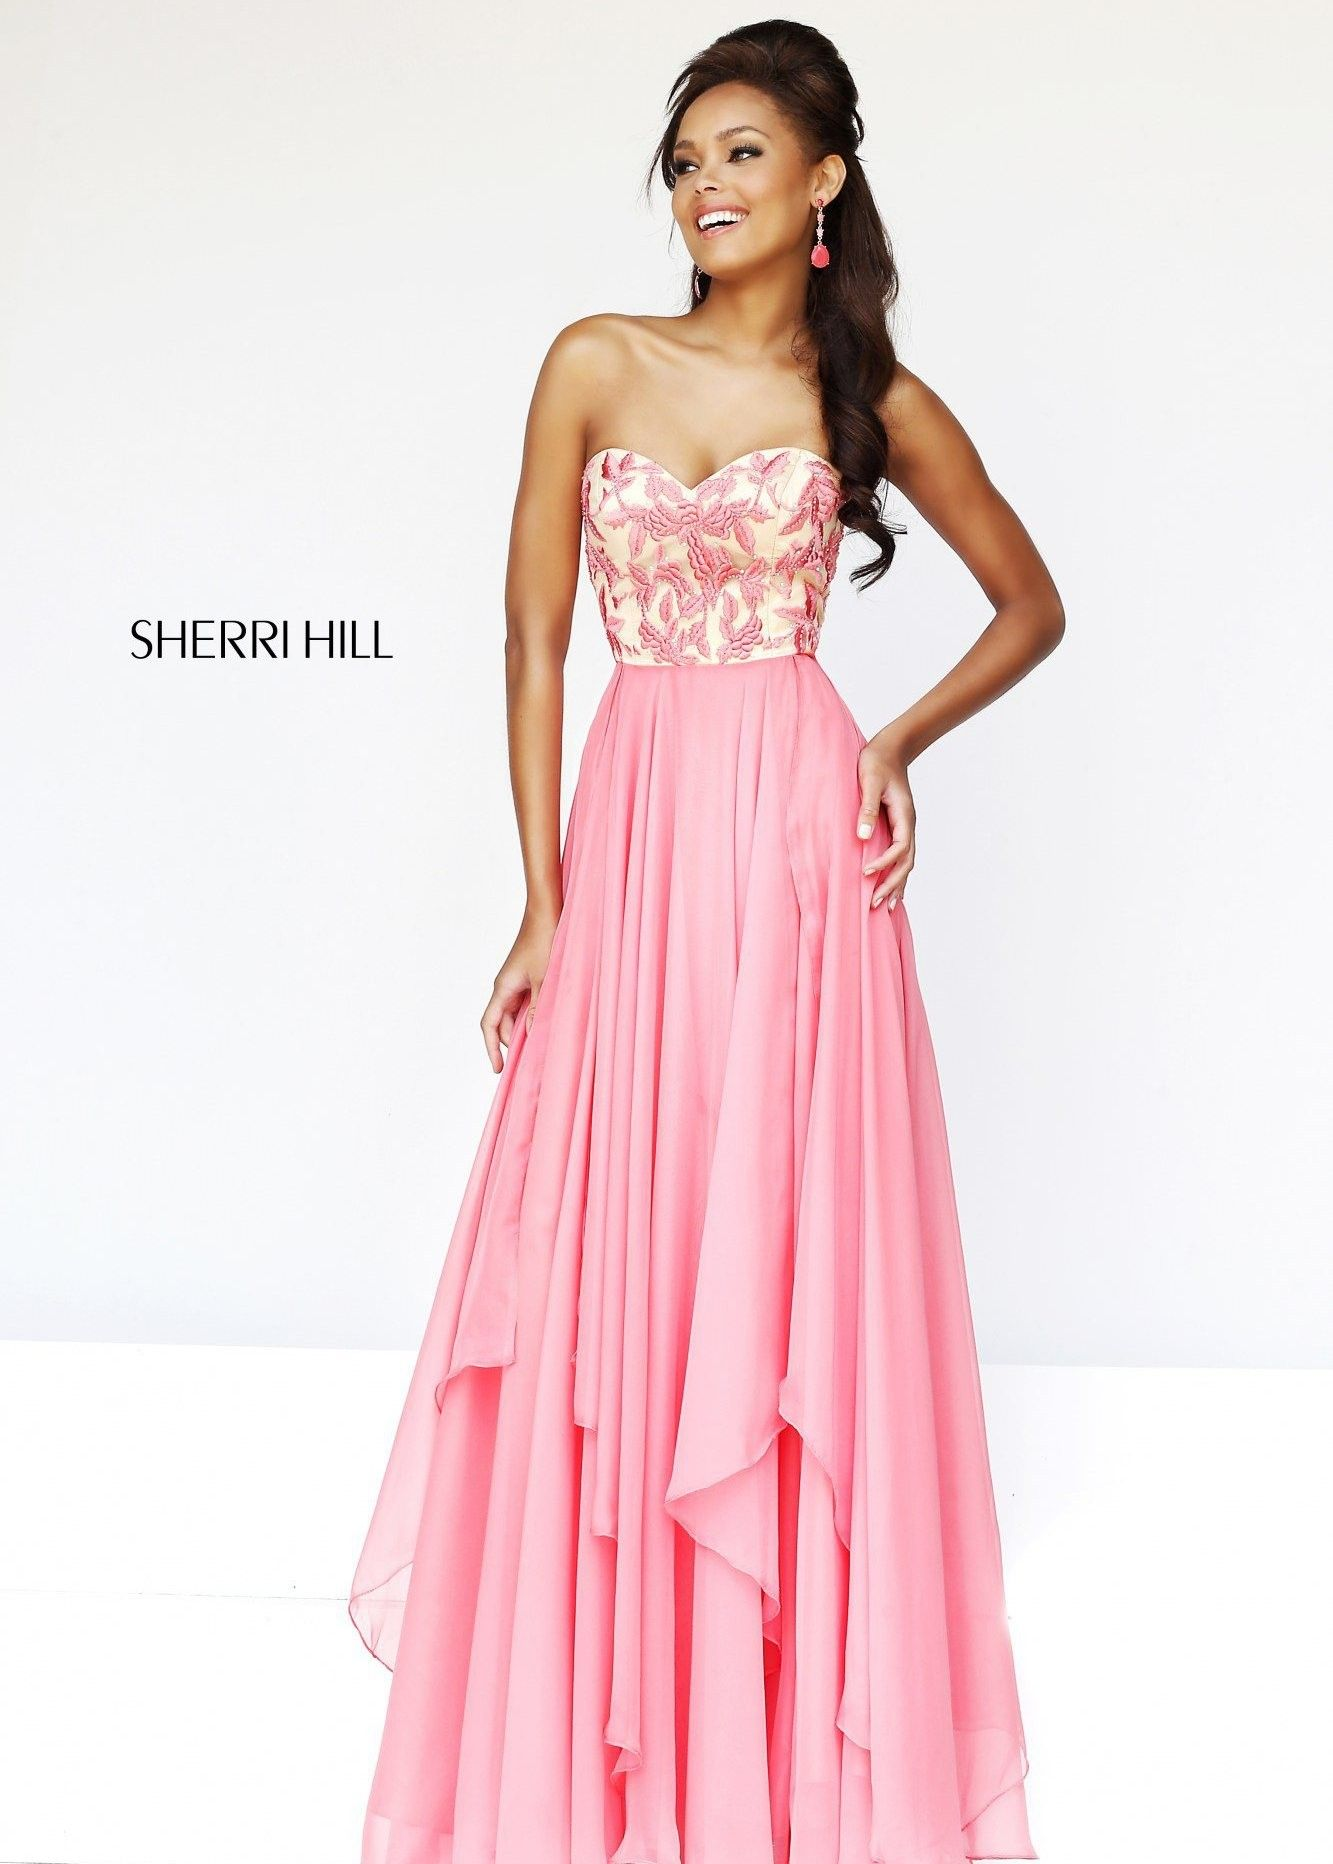 Sherri hill coral floral embroidered prom gown available at